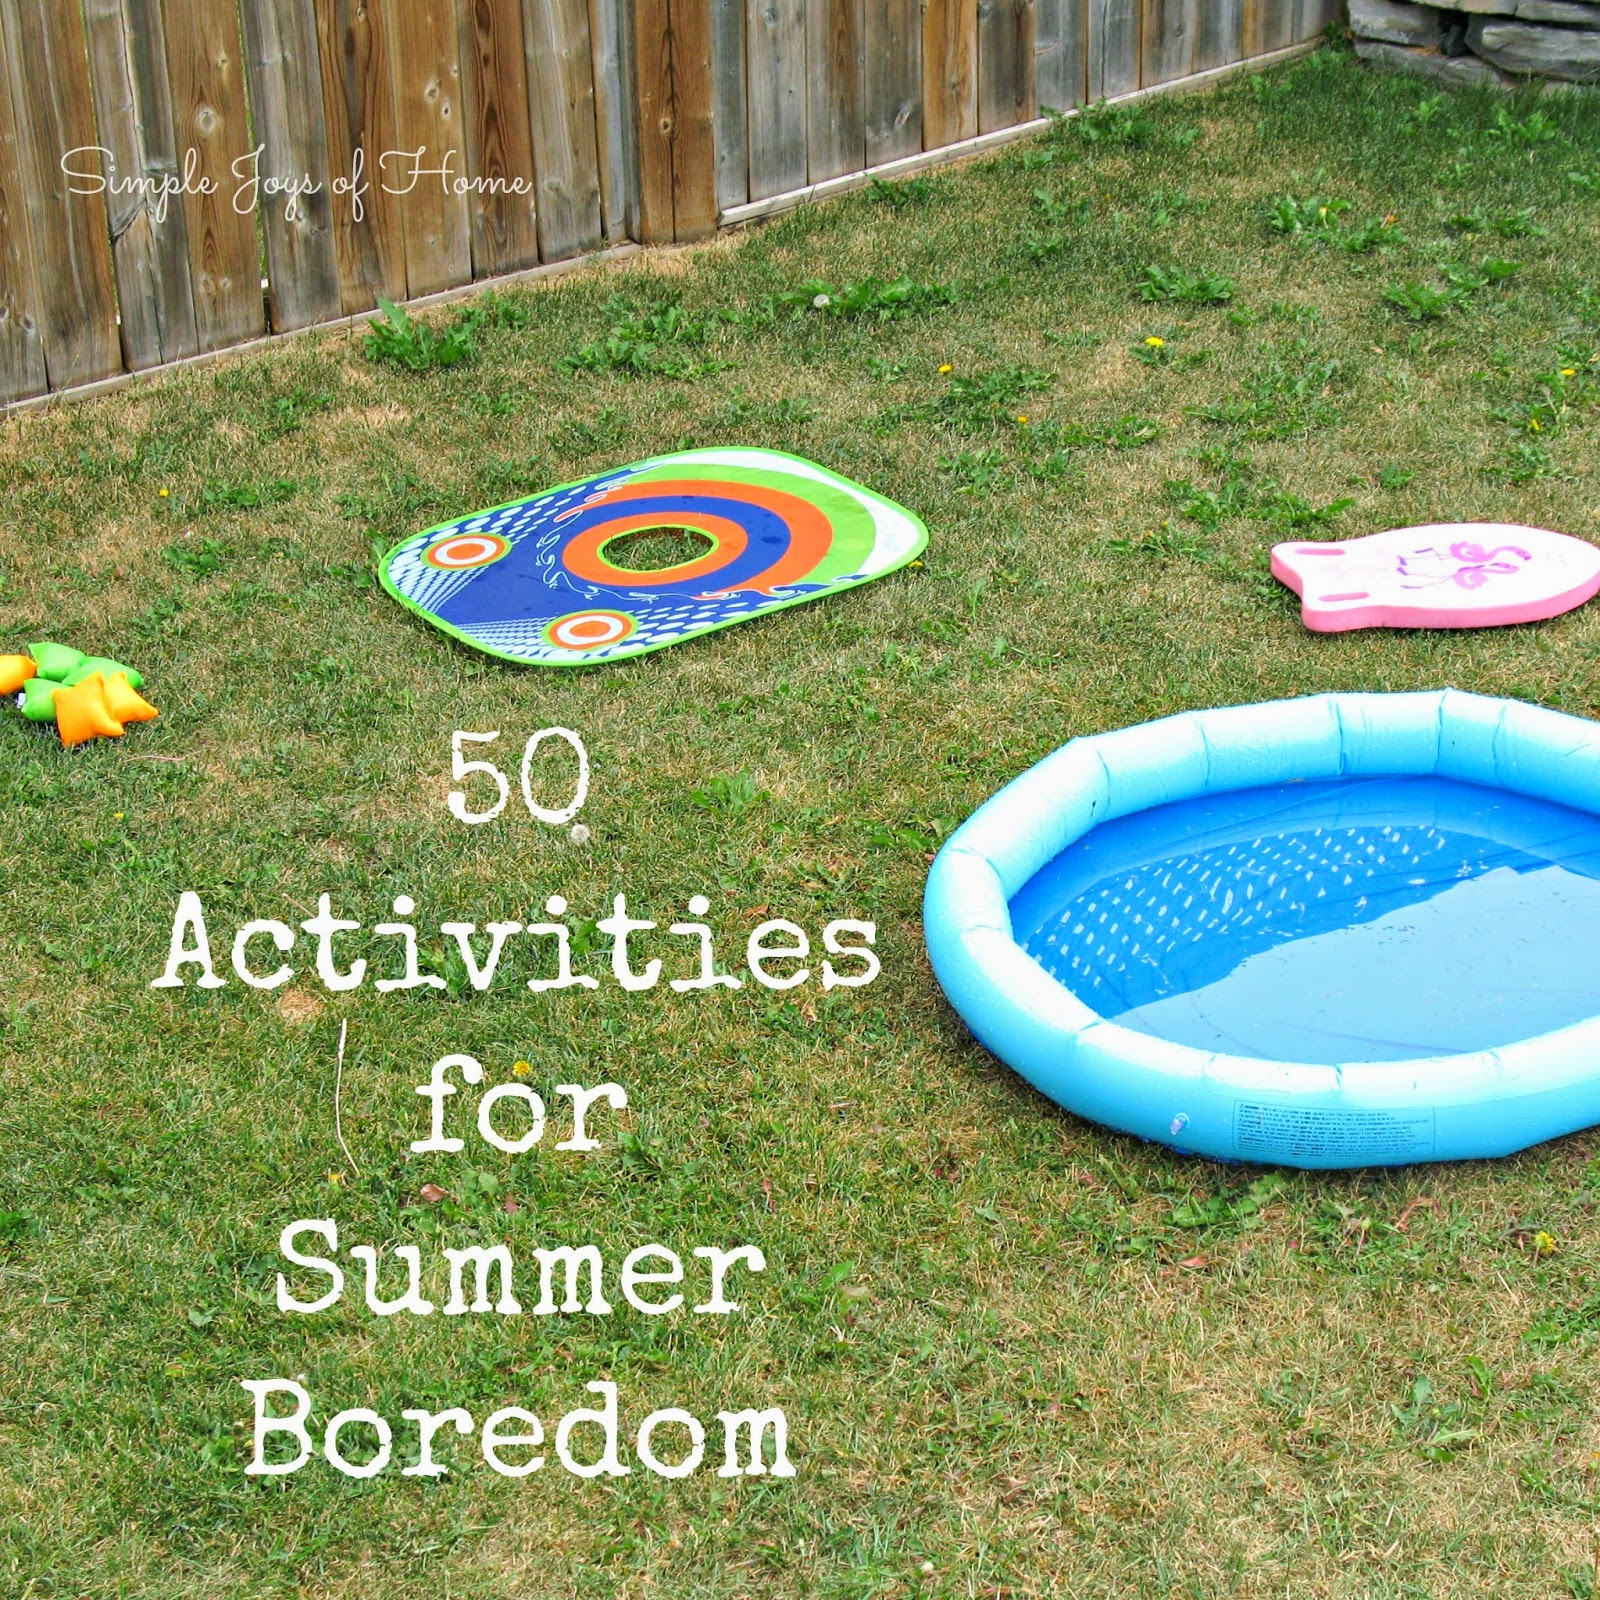 50 Activities for Summer Boredom